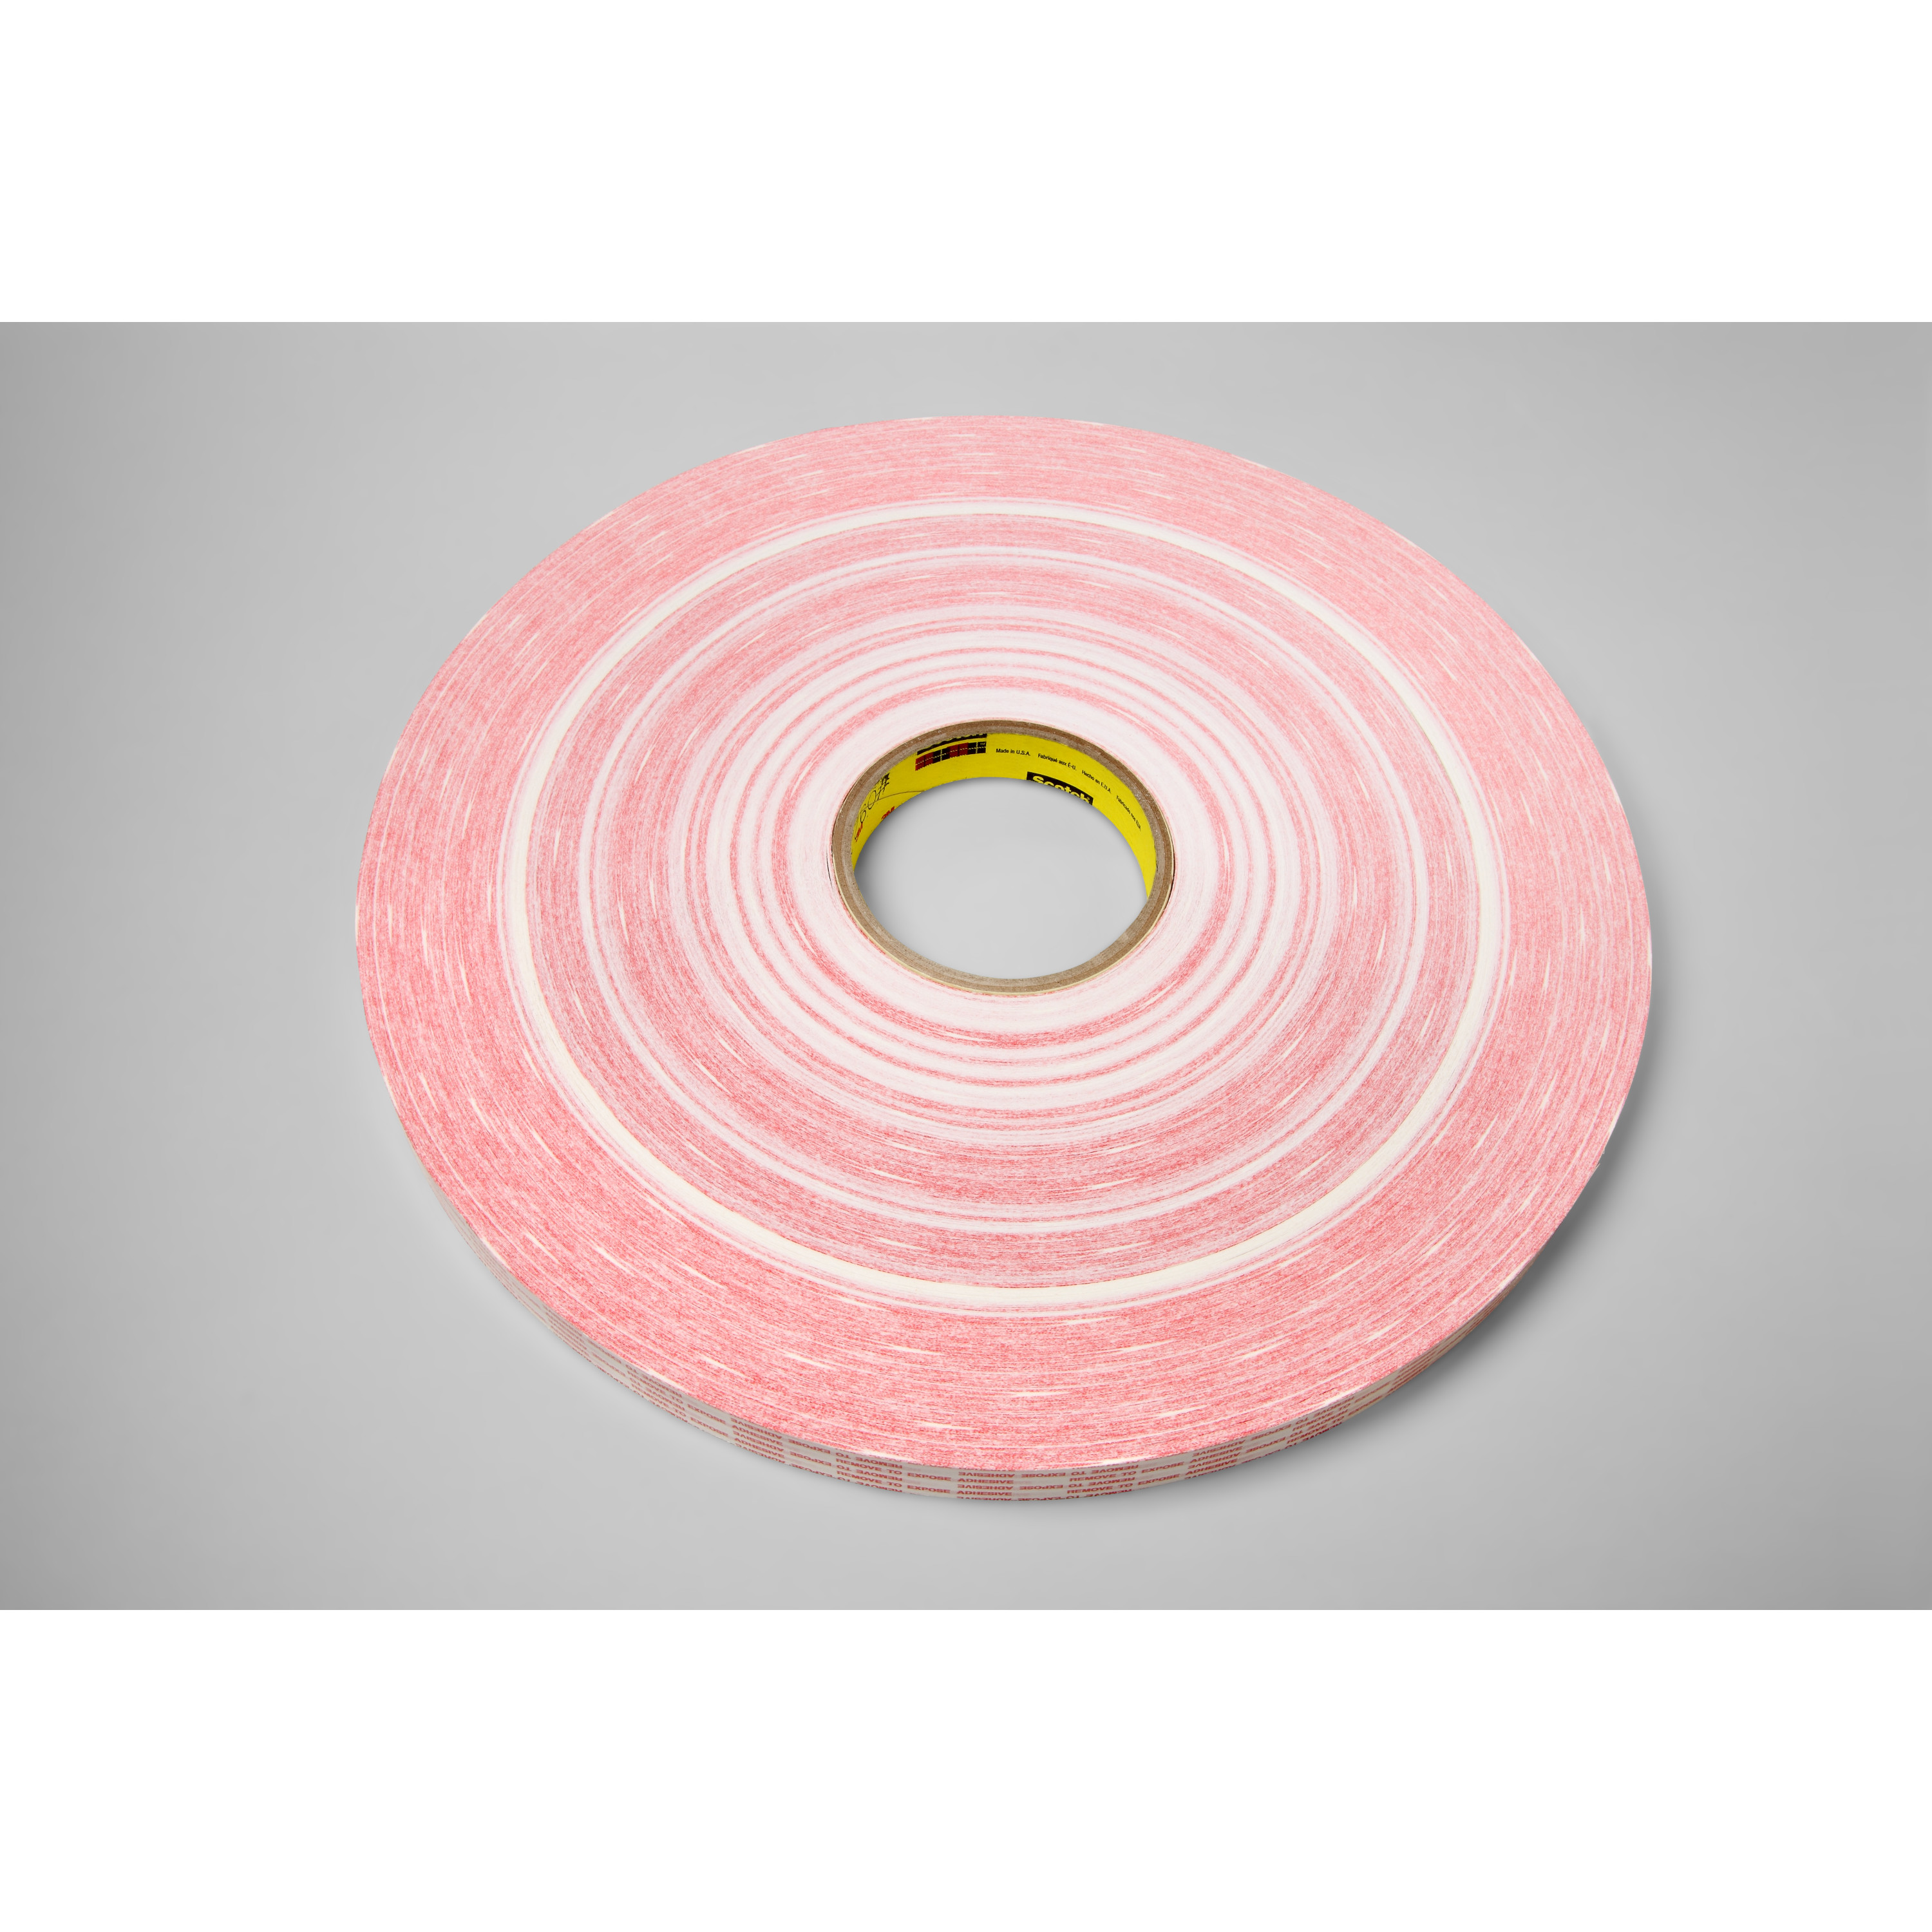 3M™ Adhesive Transfer Tape Extended Liner 920XL, Translucent, 3/4 in x 1000 yd, 1 mil, 9 rolls per case